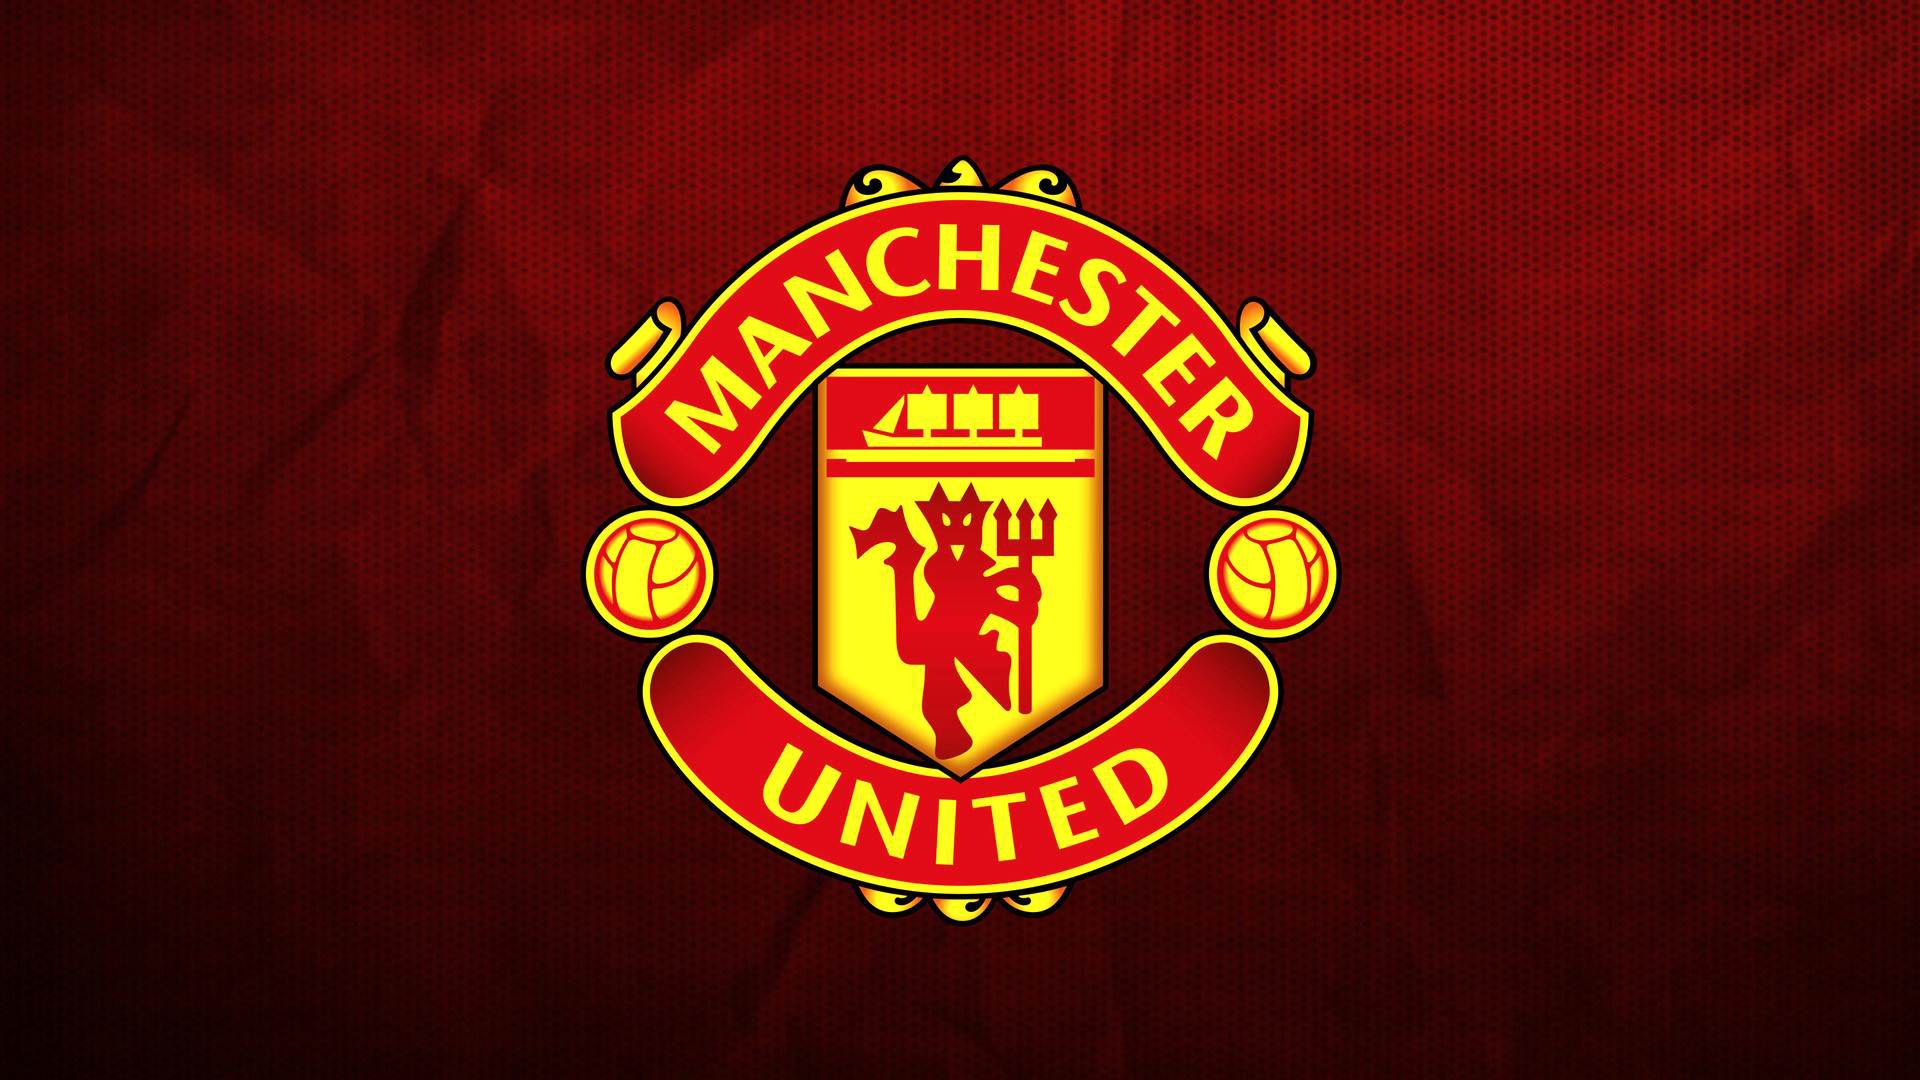 Manchester United Logo Wallpapers HD Wallpaper 640×1136.